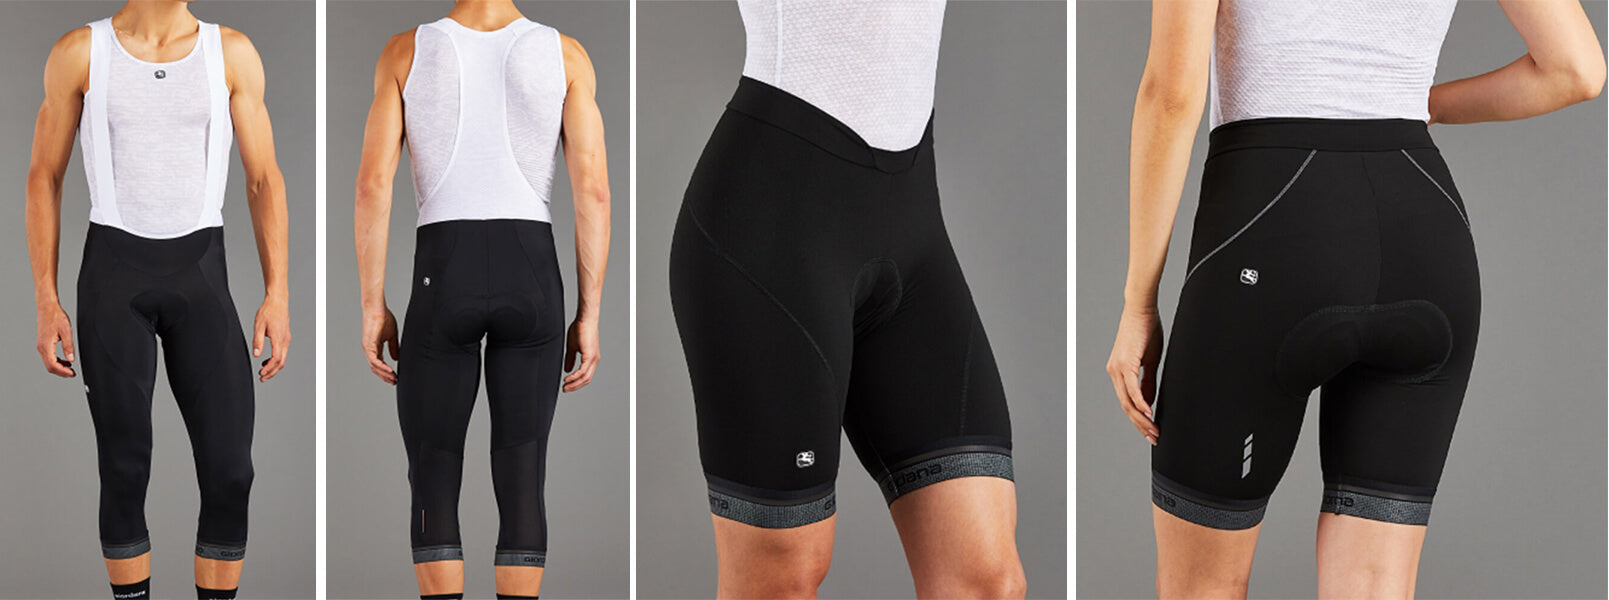 Giordana Contender Fusion Cycling Shorts and Knickers